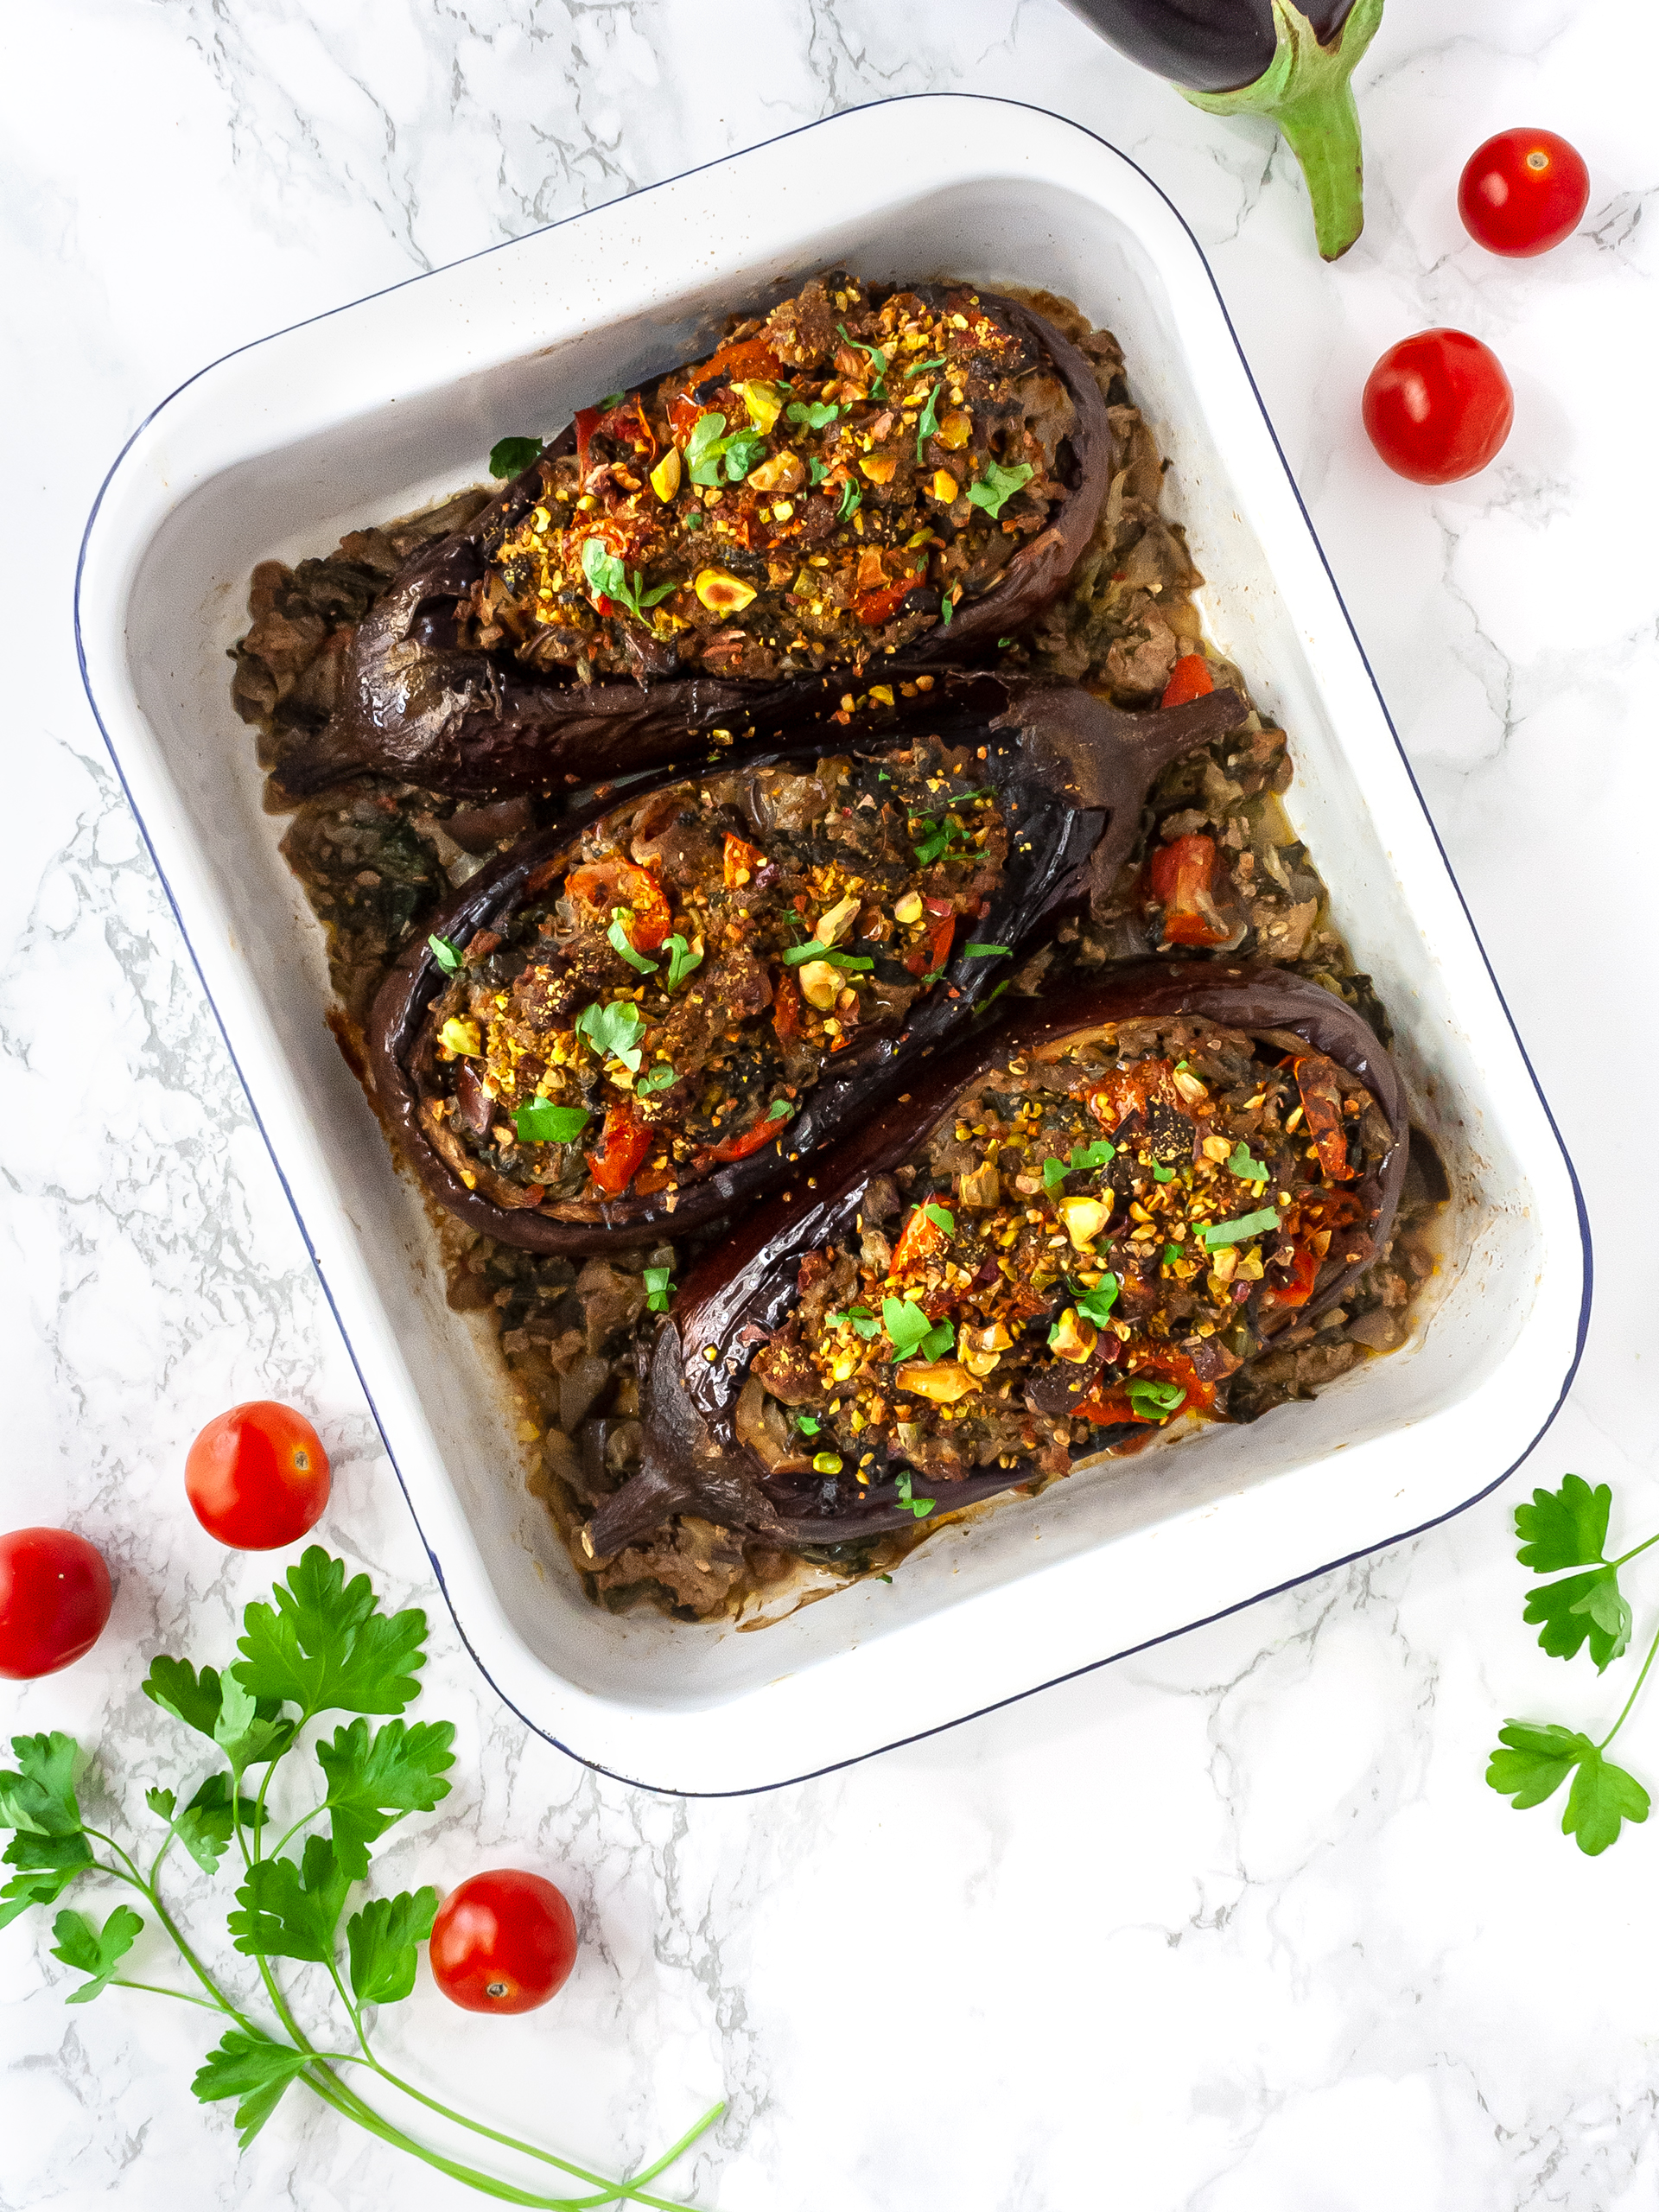 Keto Stuffed Eggplant Recipe